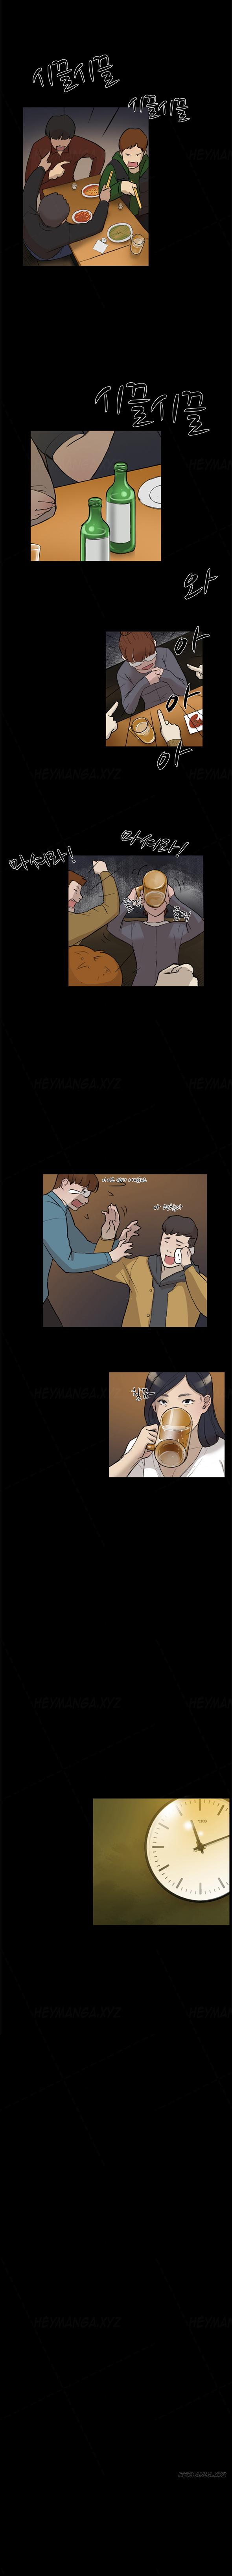 Double Date Ch.1-12 45